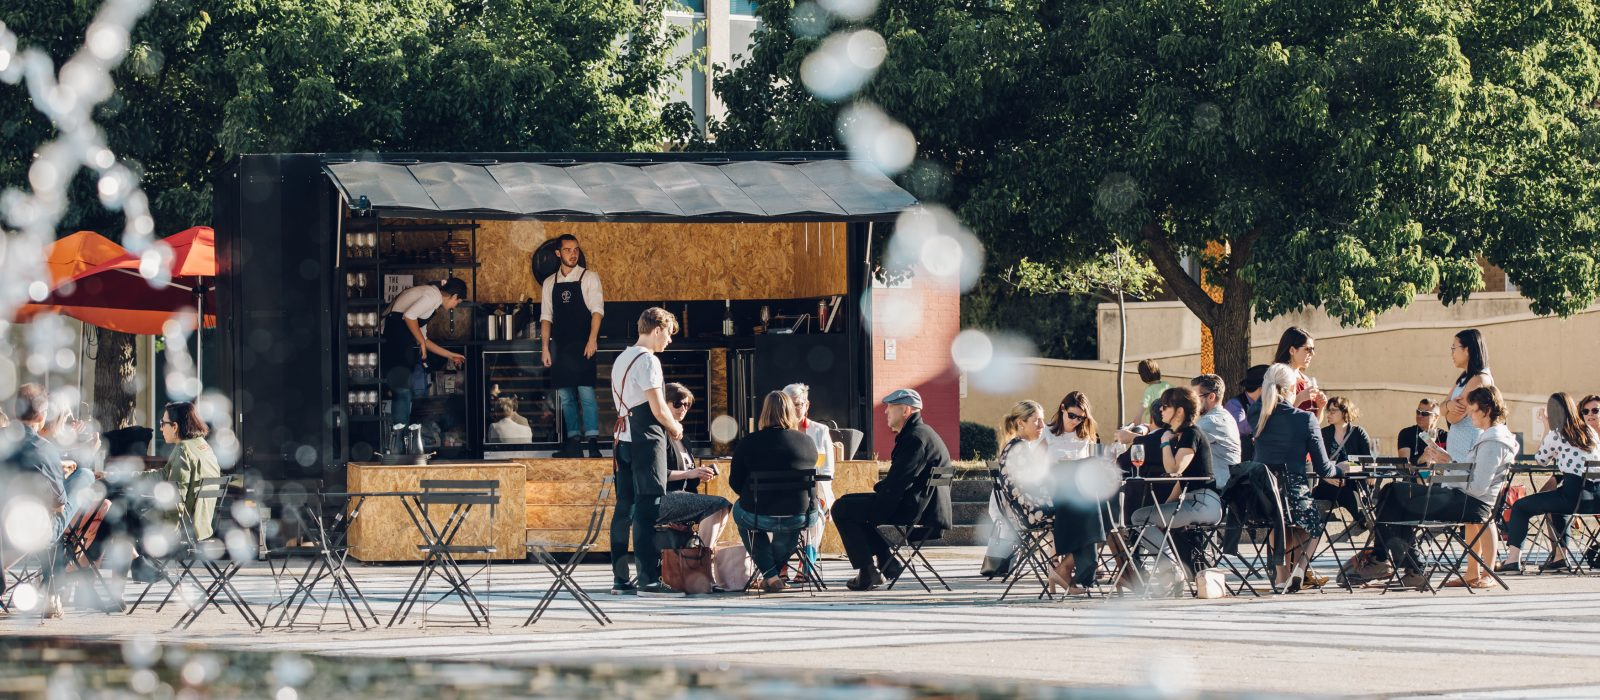 Civic Square pop-up bar. Photo: 5 Foot Photography